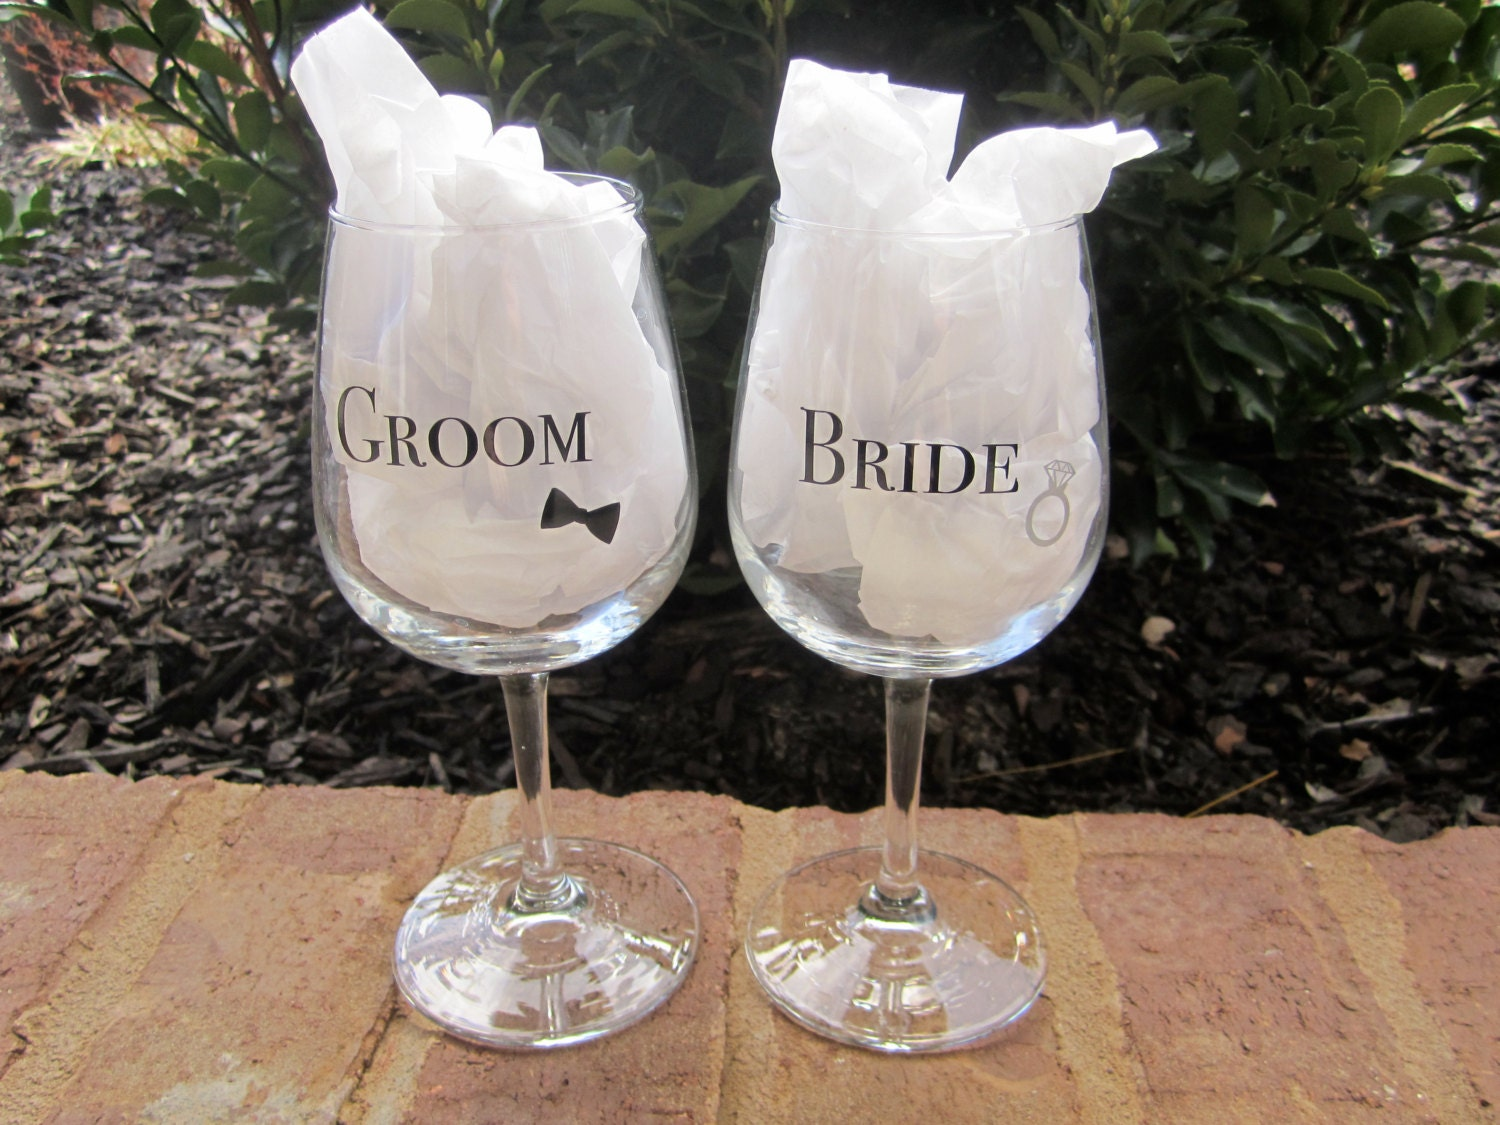 Engraved Wedding Gifts For Bride And Groom: Whimsical Bride/Groom Wine Glasses. Wedding Glasses